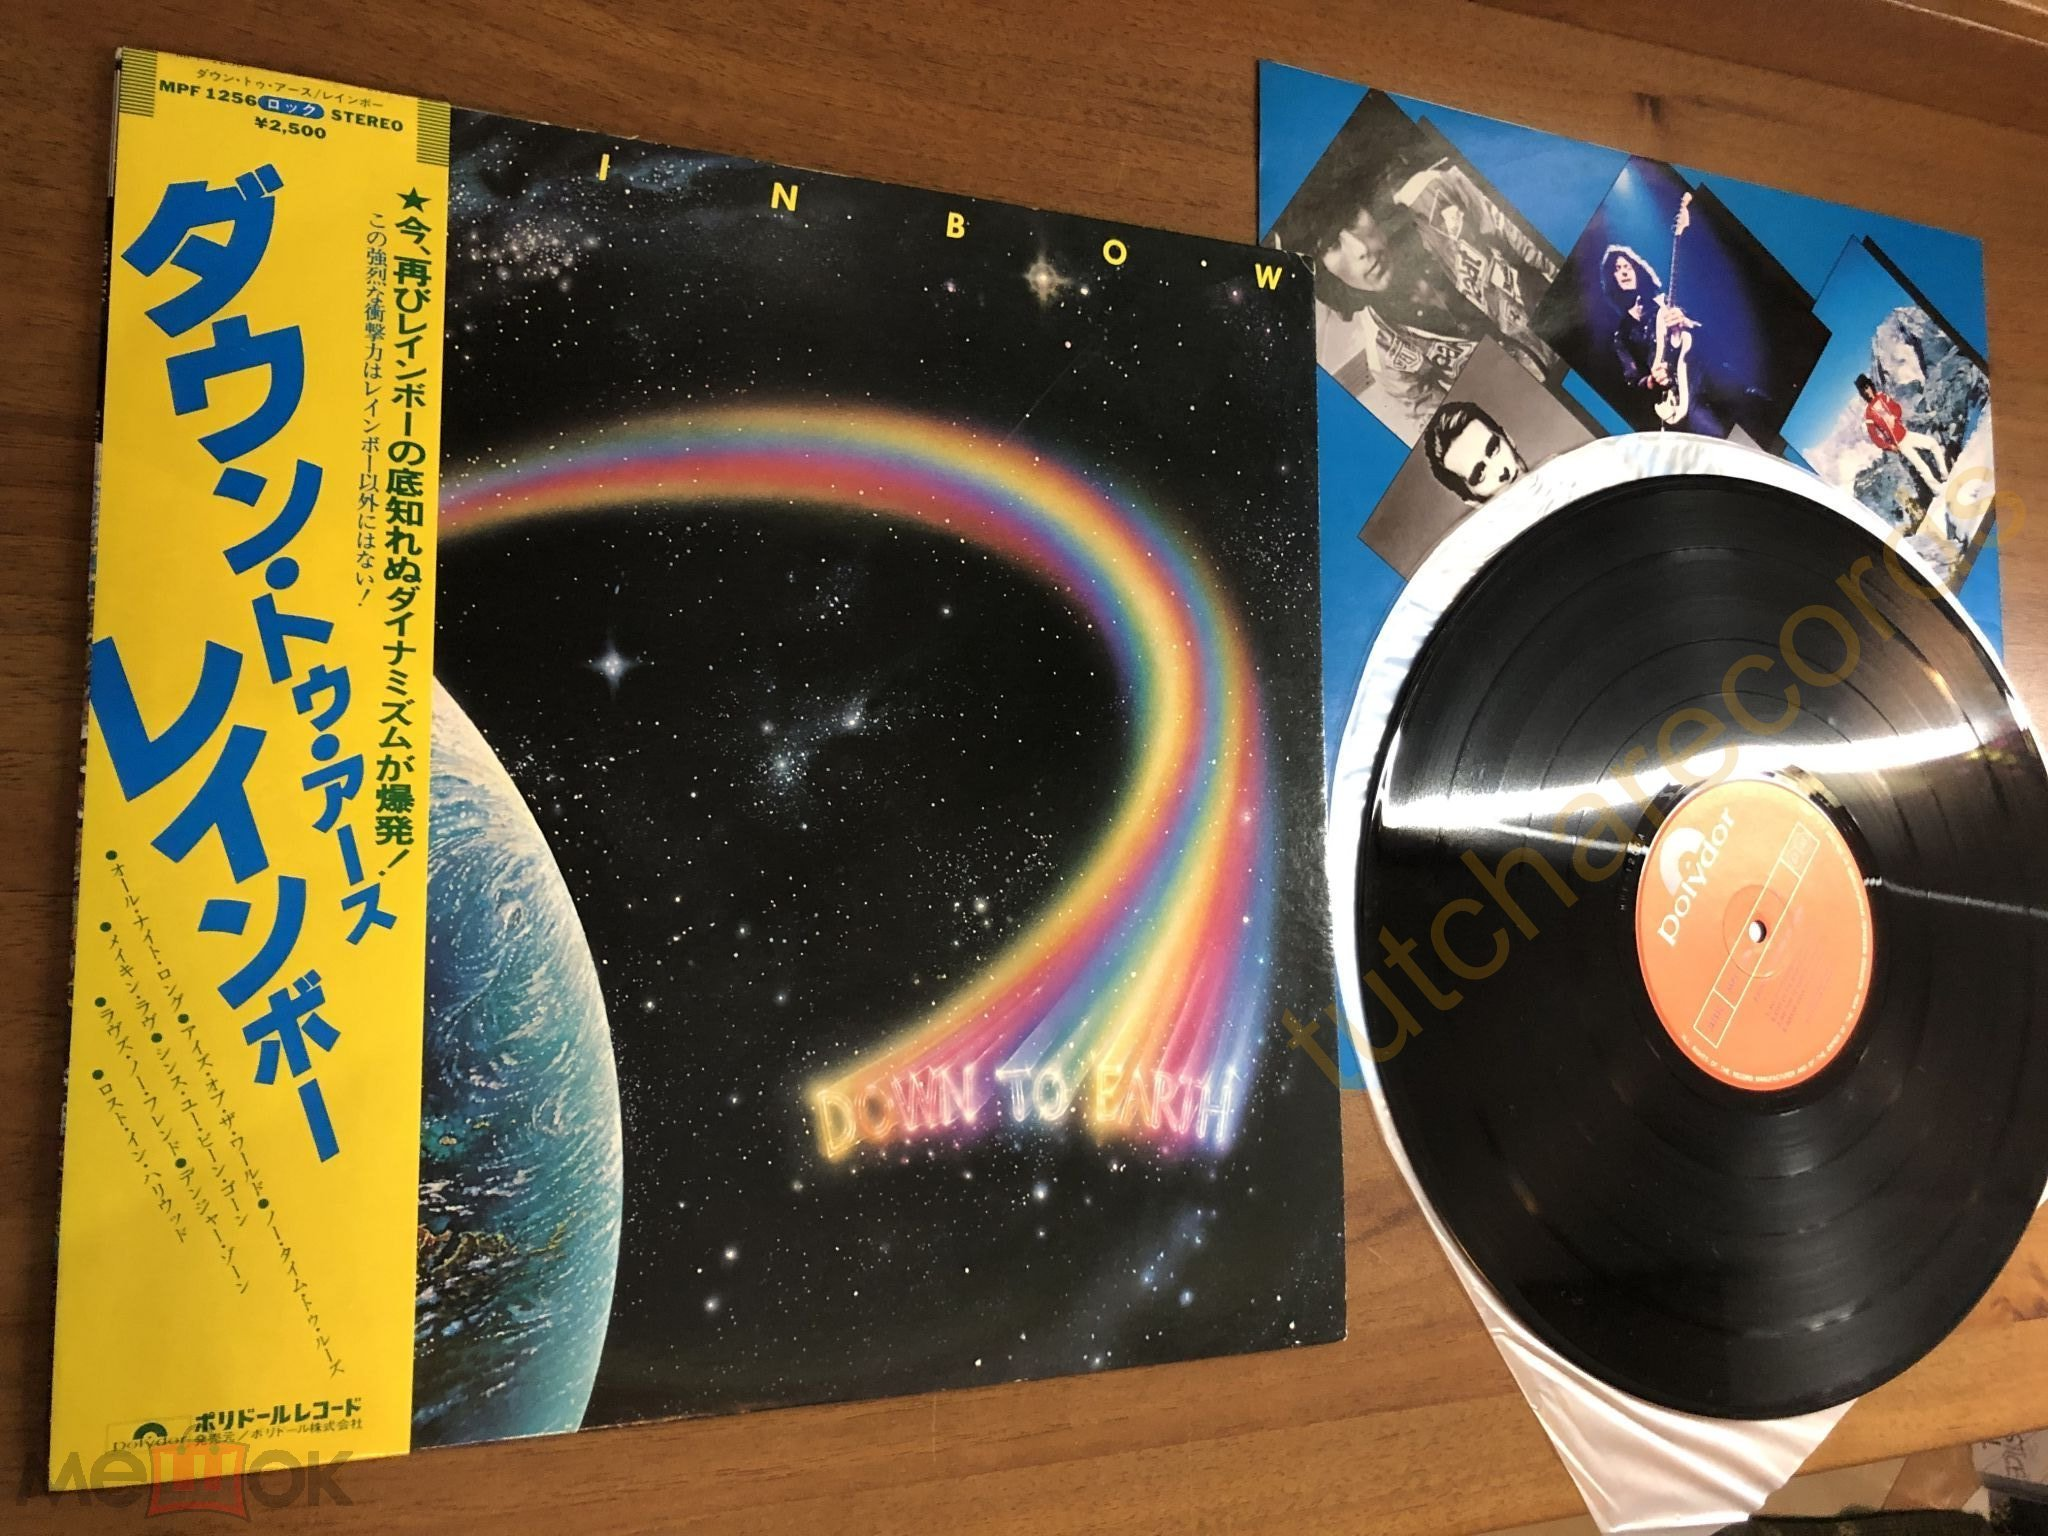 Rainbow ‎– Down To Earth - LP - Polydor ‎– MPF 1256‎ –1ST JAPAN - ORIGINAL 1979 MINT от 1 рубля